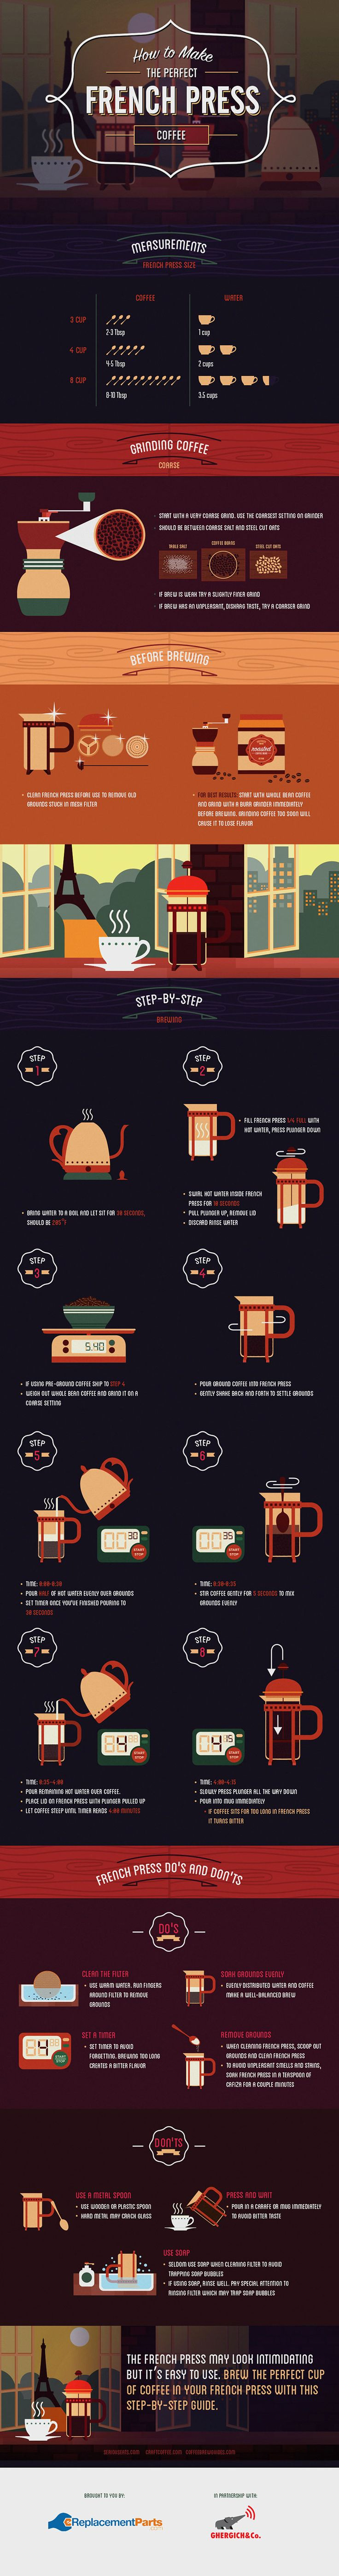 Making the Perfect French Press Coffee | eReplacementParts.com DIY Blog